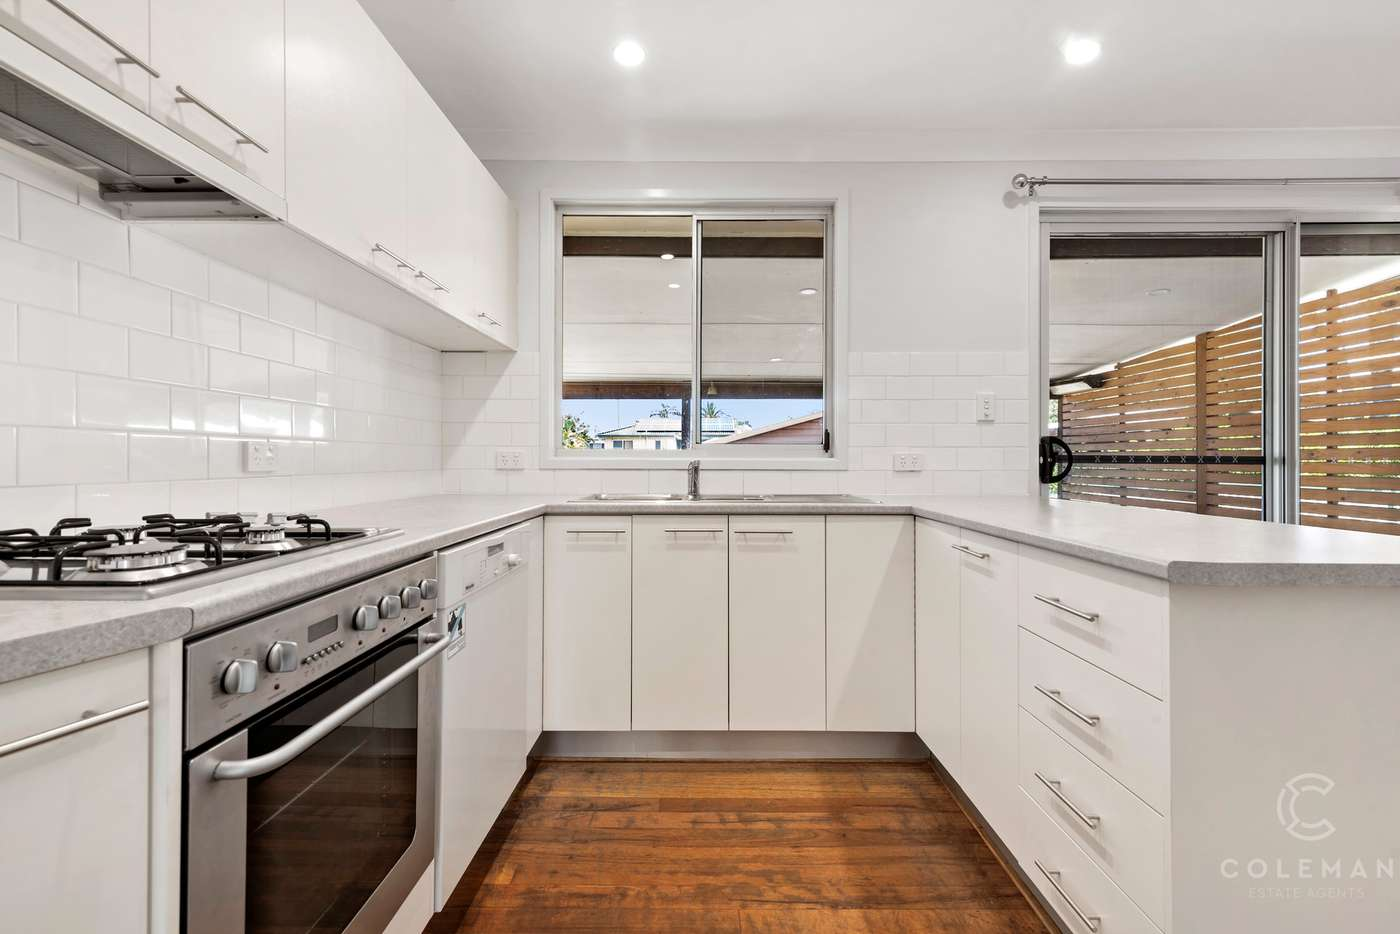 Fifth view of Homely house listing, 16 Tingira Street, Charmhaven NSW 2263